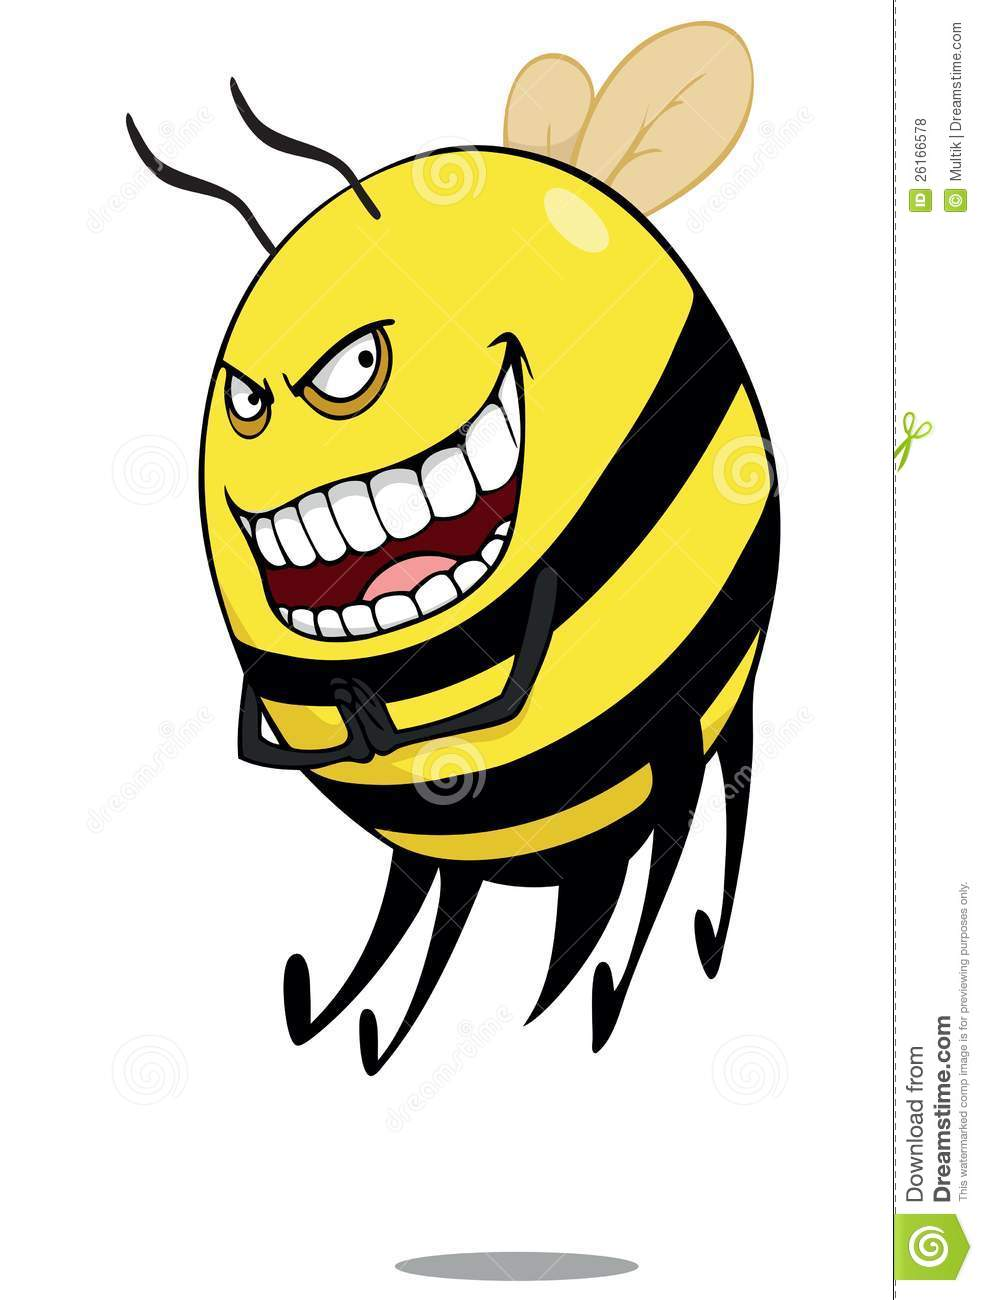 Bad Bee Royalty Free Stock Photos - Image: 26166578